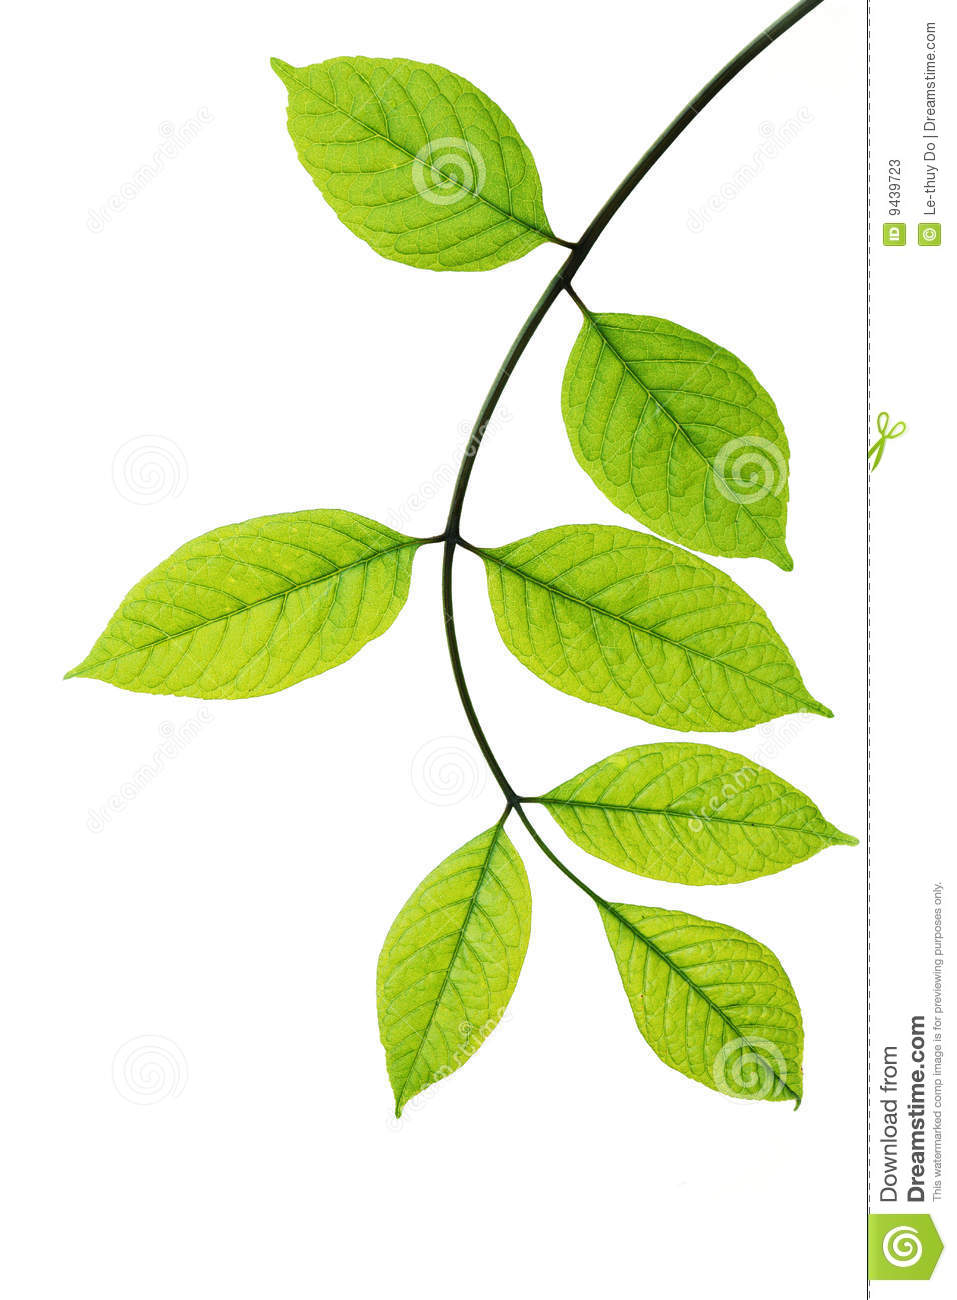 Young leaf photo nude sex hentai pic